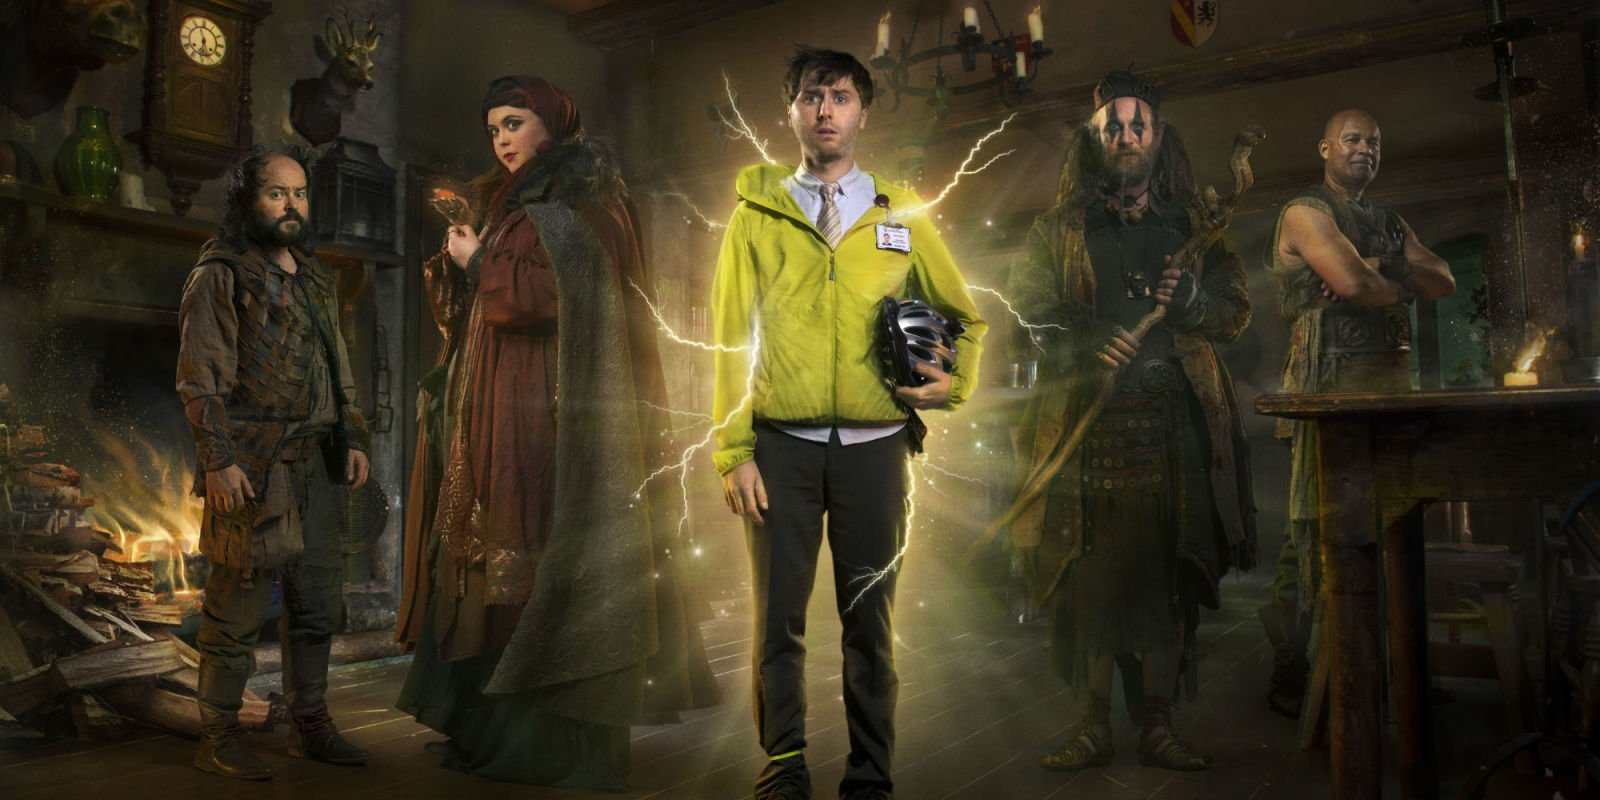 Dave announces it's bringing back Zapped and Porters for more episodes